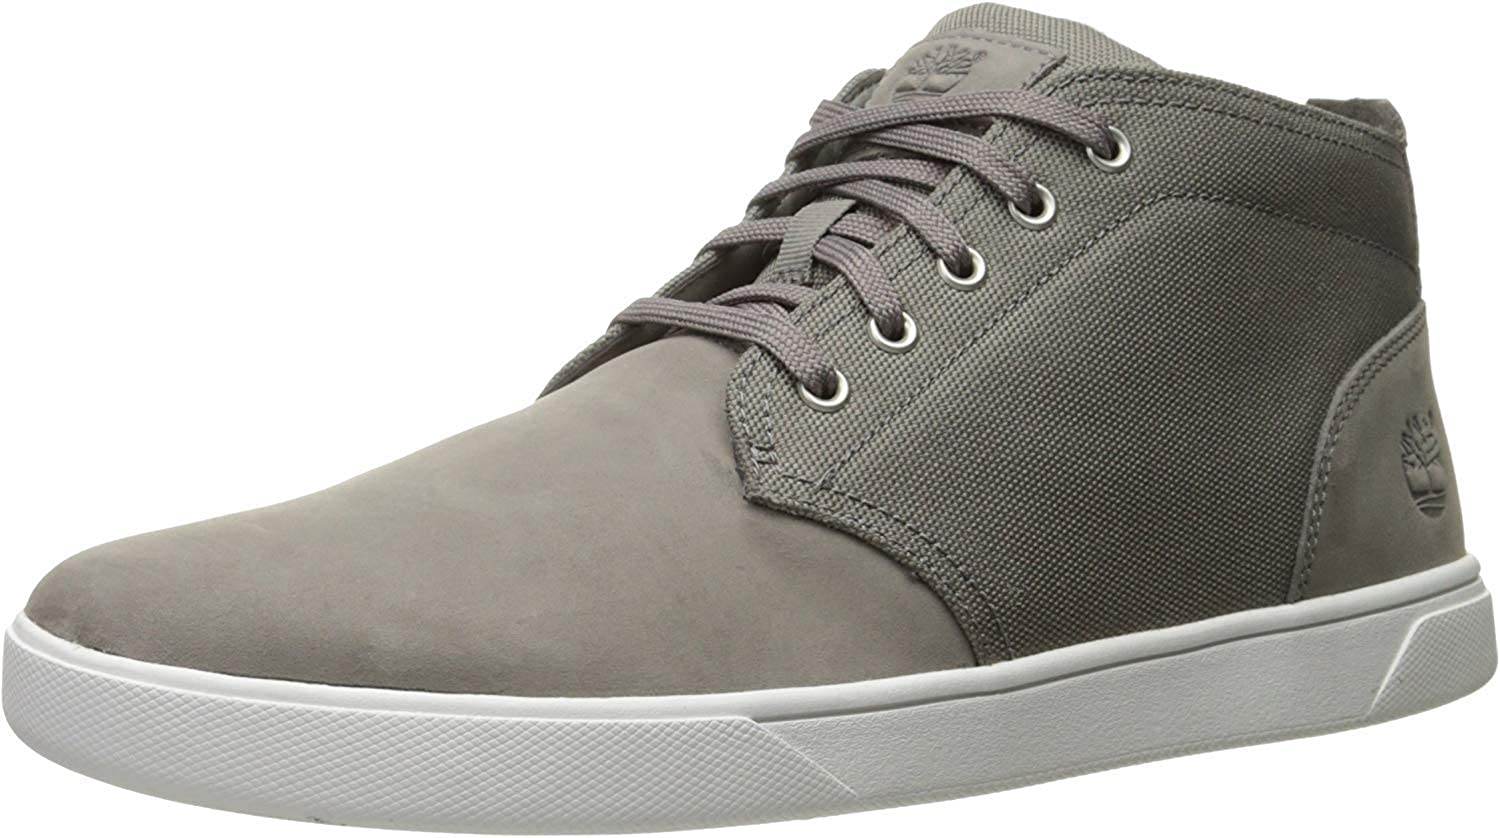 Ordenanza del gobierno derrochador globo  Amazon.com | Timberland Men's Groveton LTT Chukka Leather & Fabric Sneaker  | Fashion Sneakers